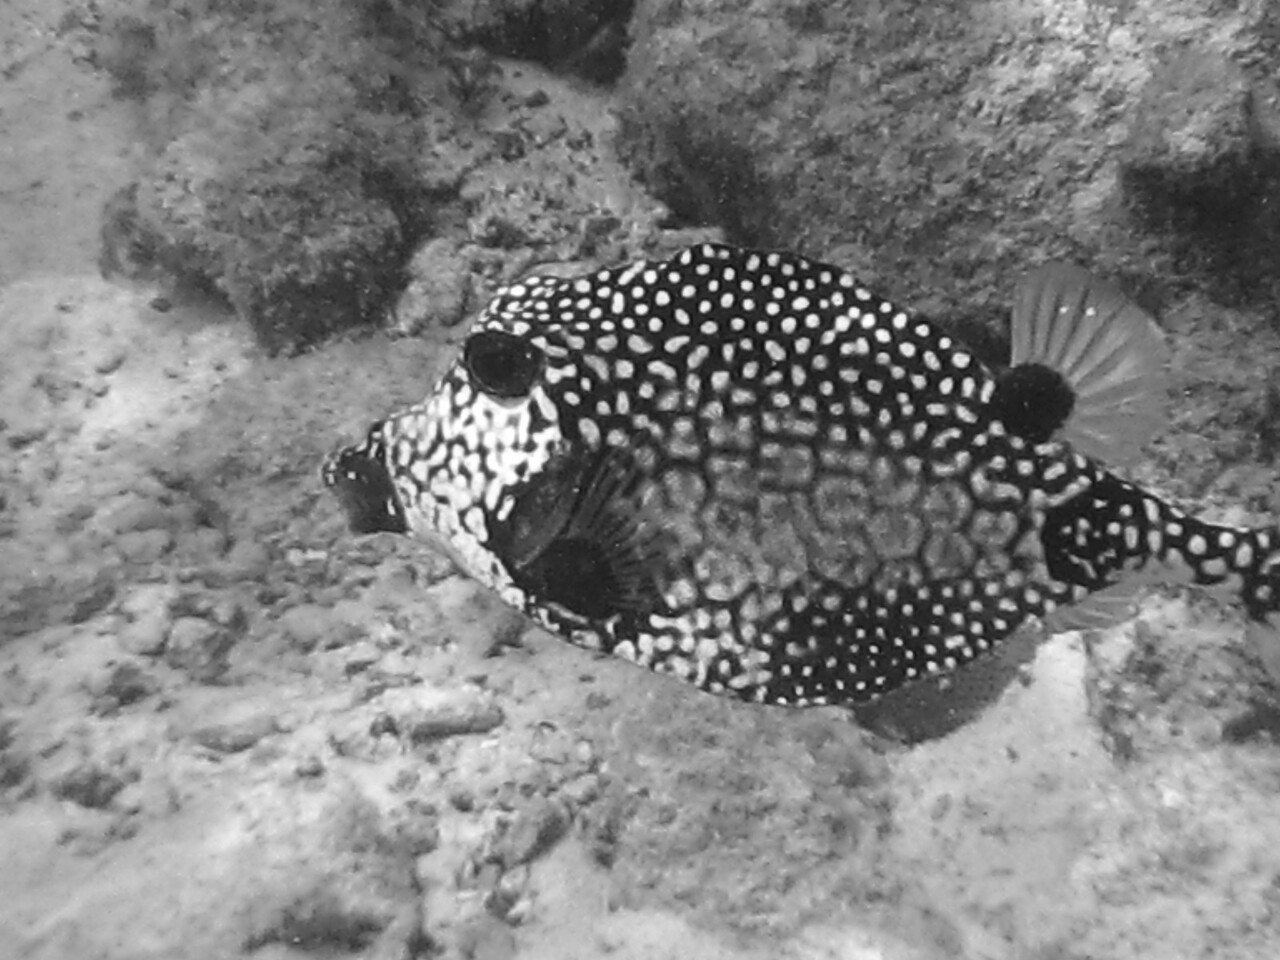 pufferfish in B&W (oops)